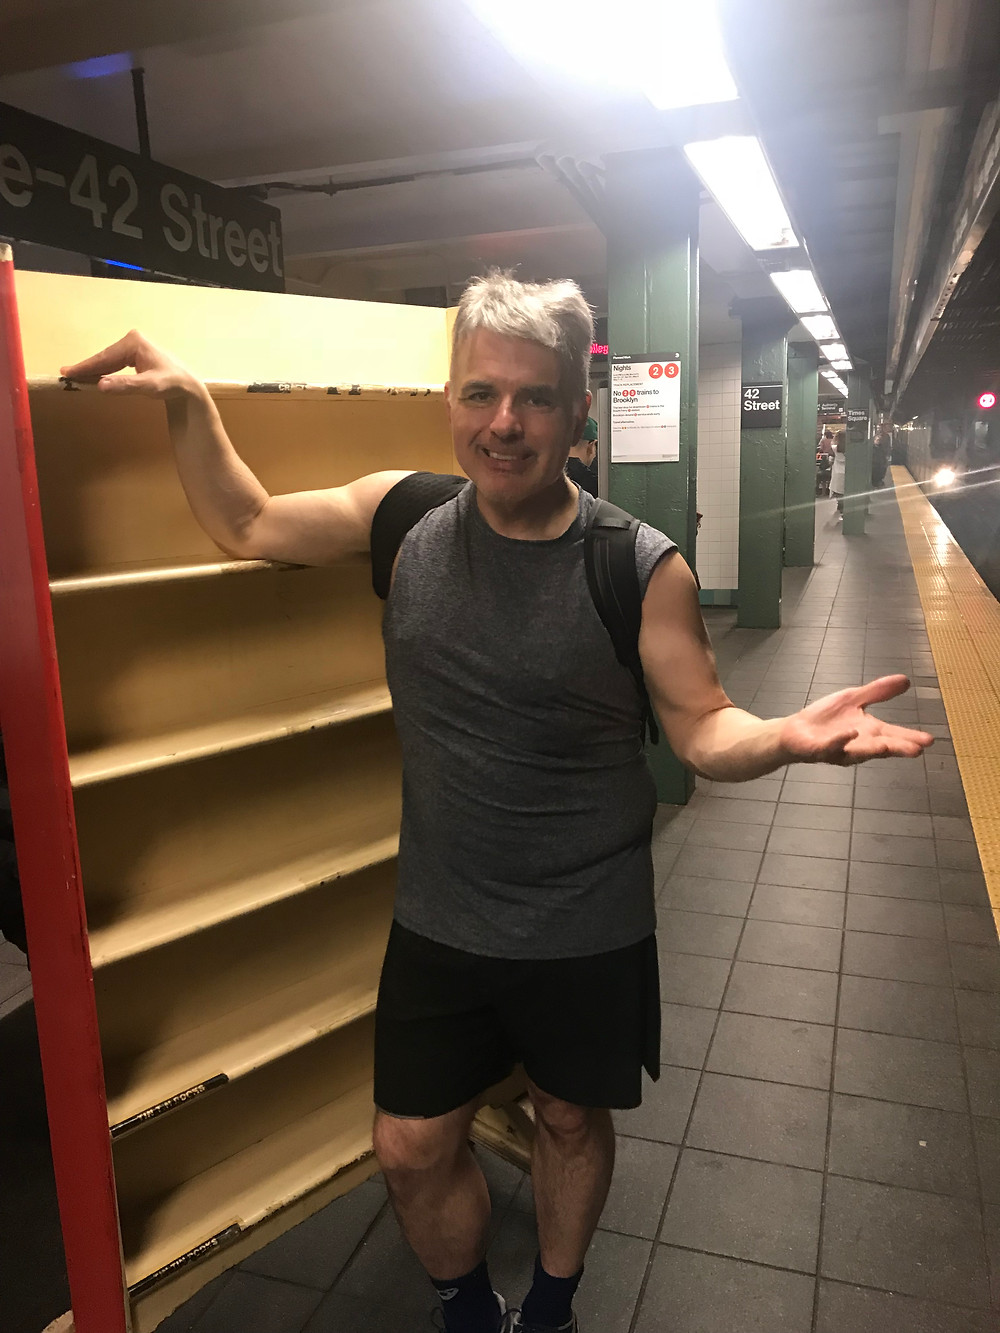 please don't ask why I am moving a vintage bookshelf on the subway